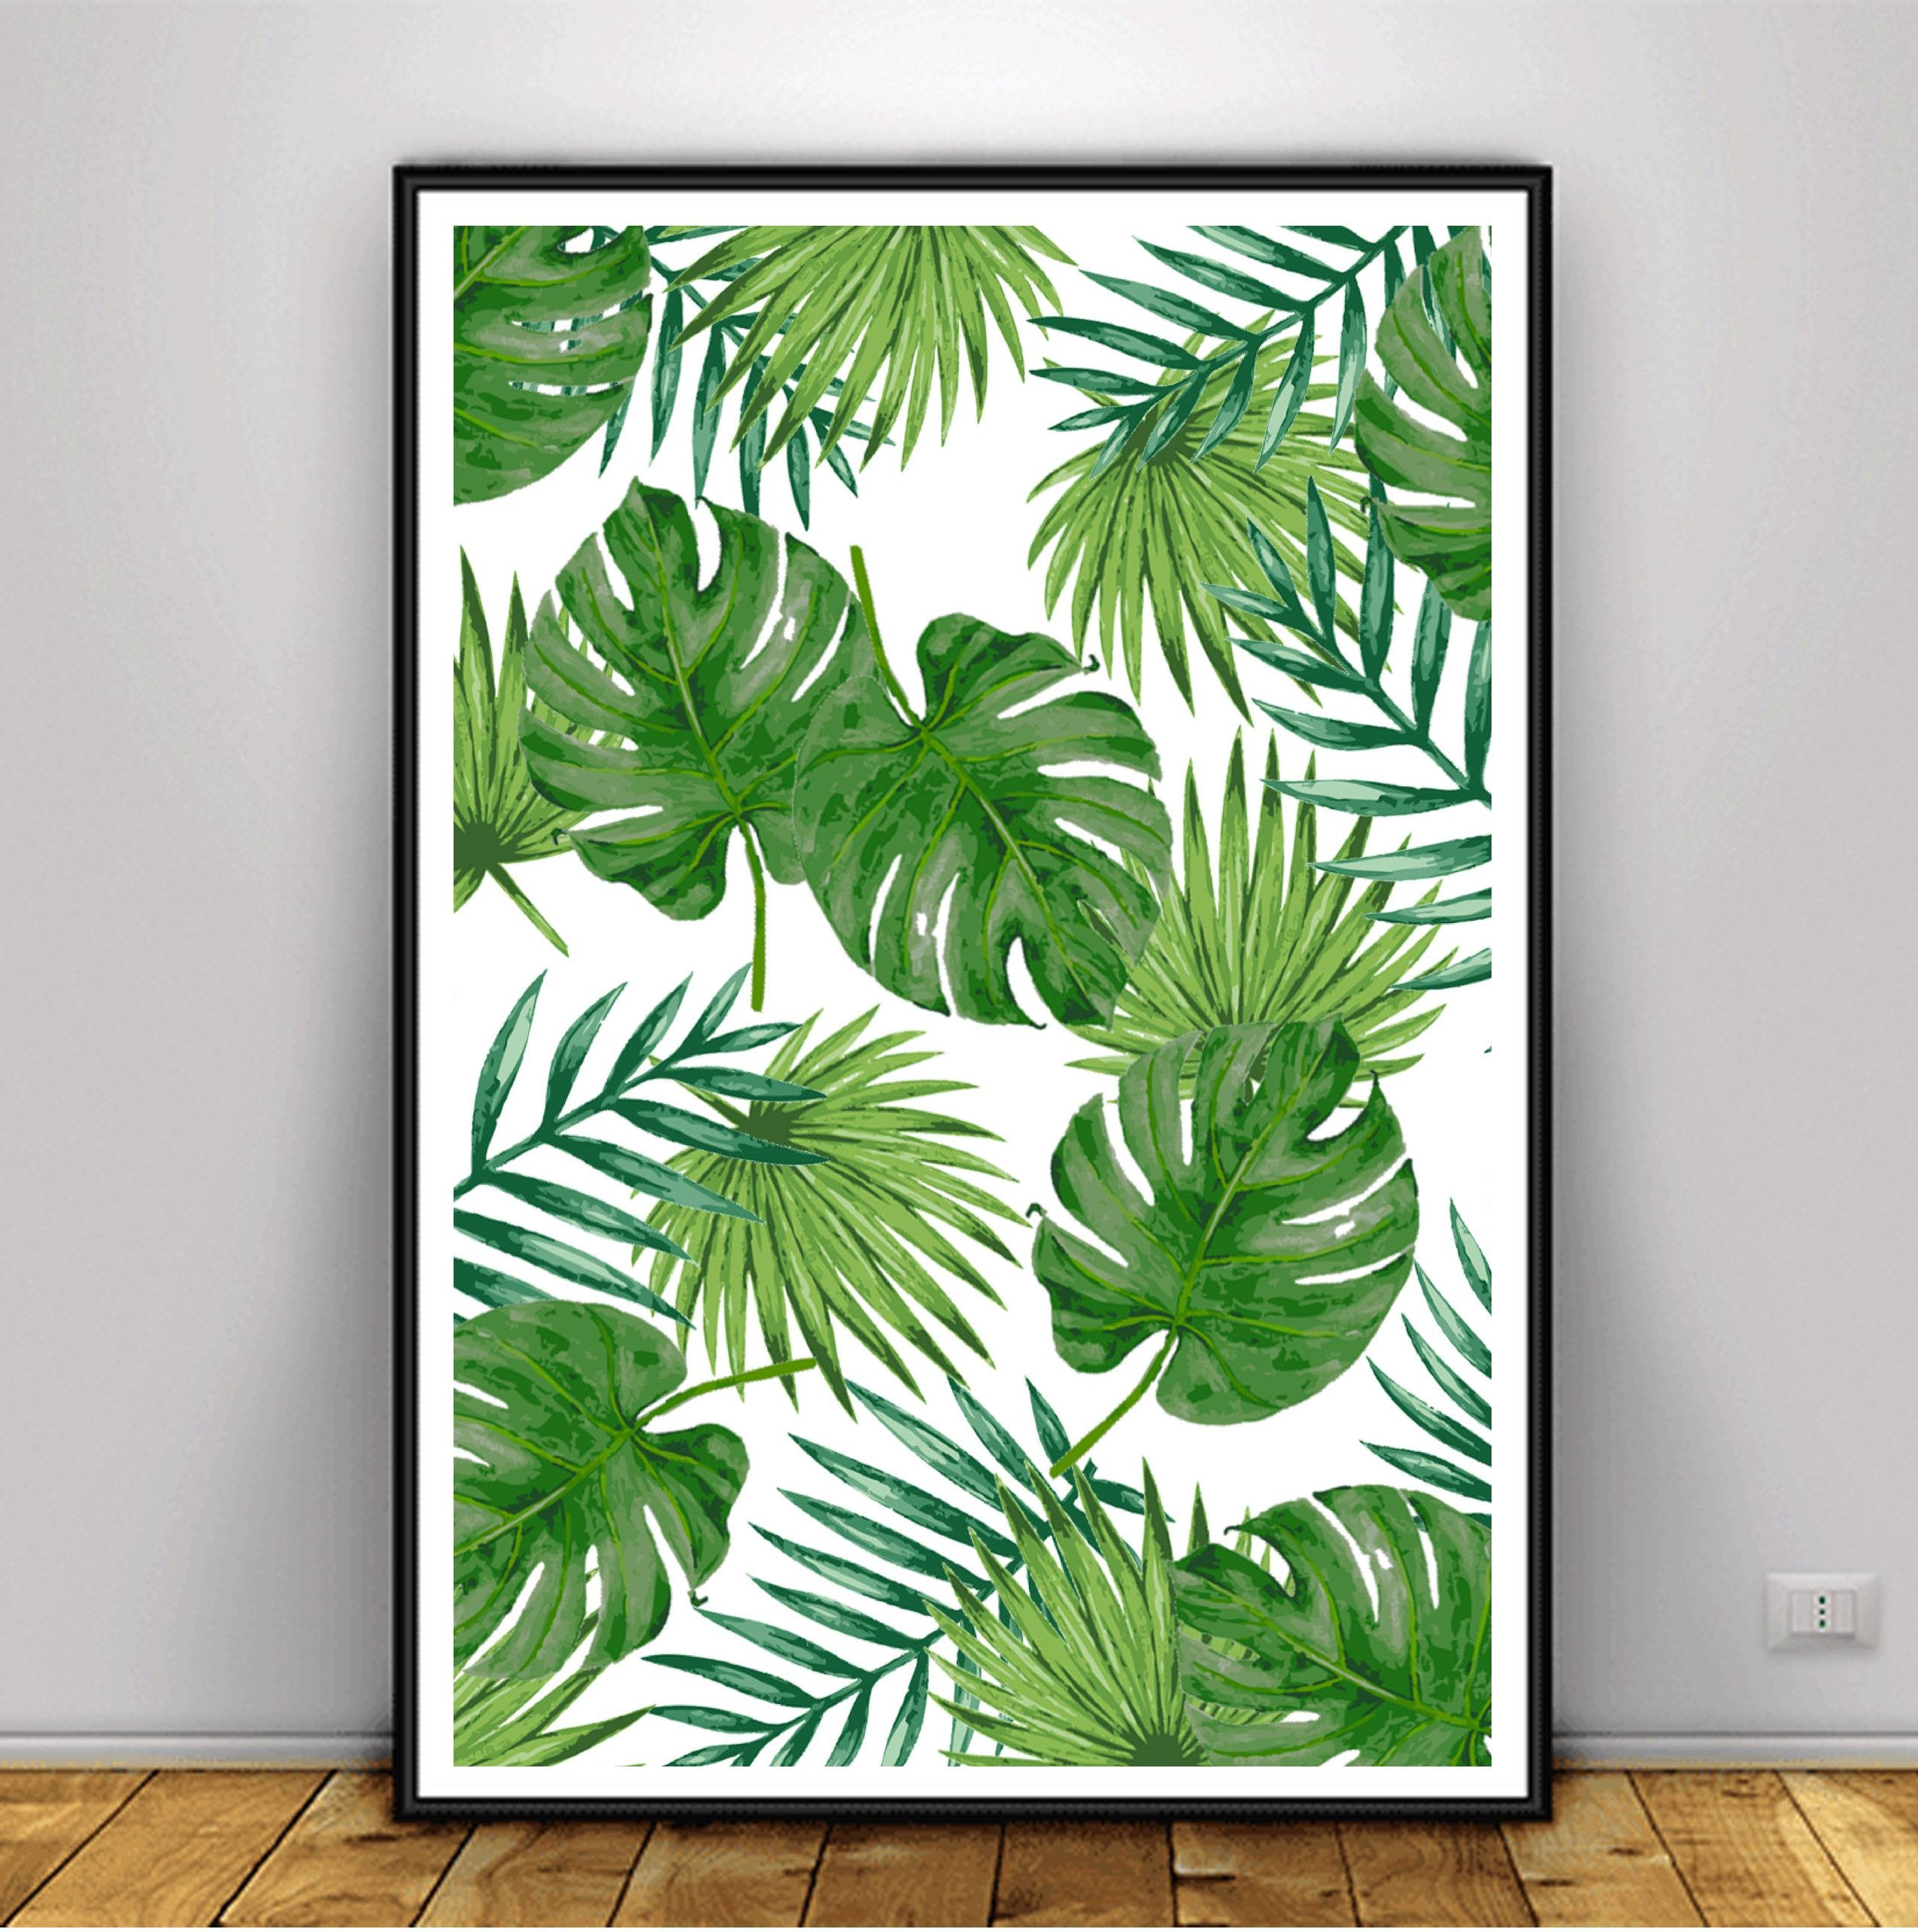 Tropical Leaf Print Banana Leaf Print Palm Leaf Poster Intended For Most Up To Date Palm Leaf Wall Art (View 13 of 20)